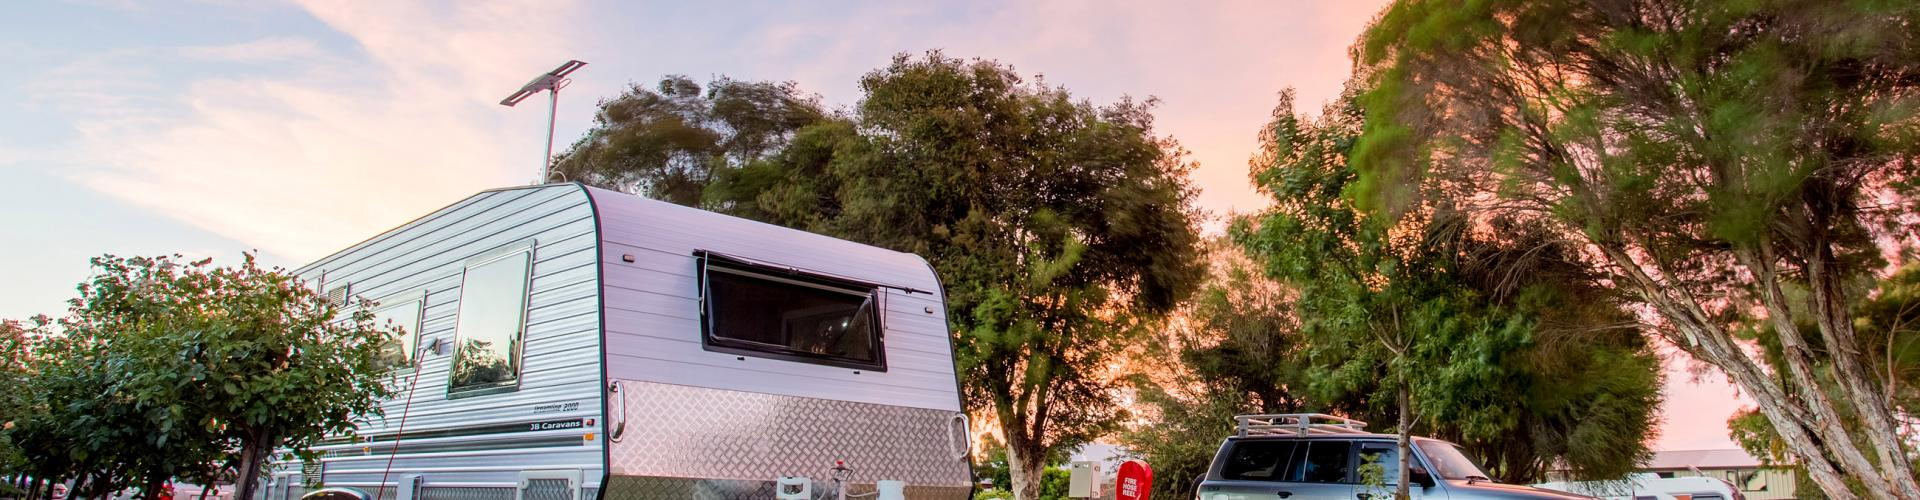 BIG4 Shepparton Park Lane Holiday Park - Caravan and Camping